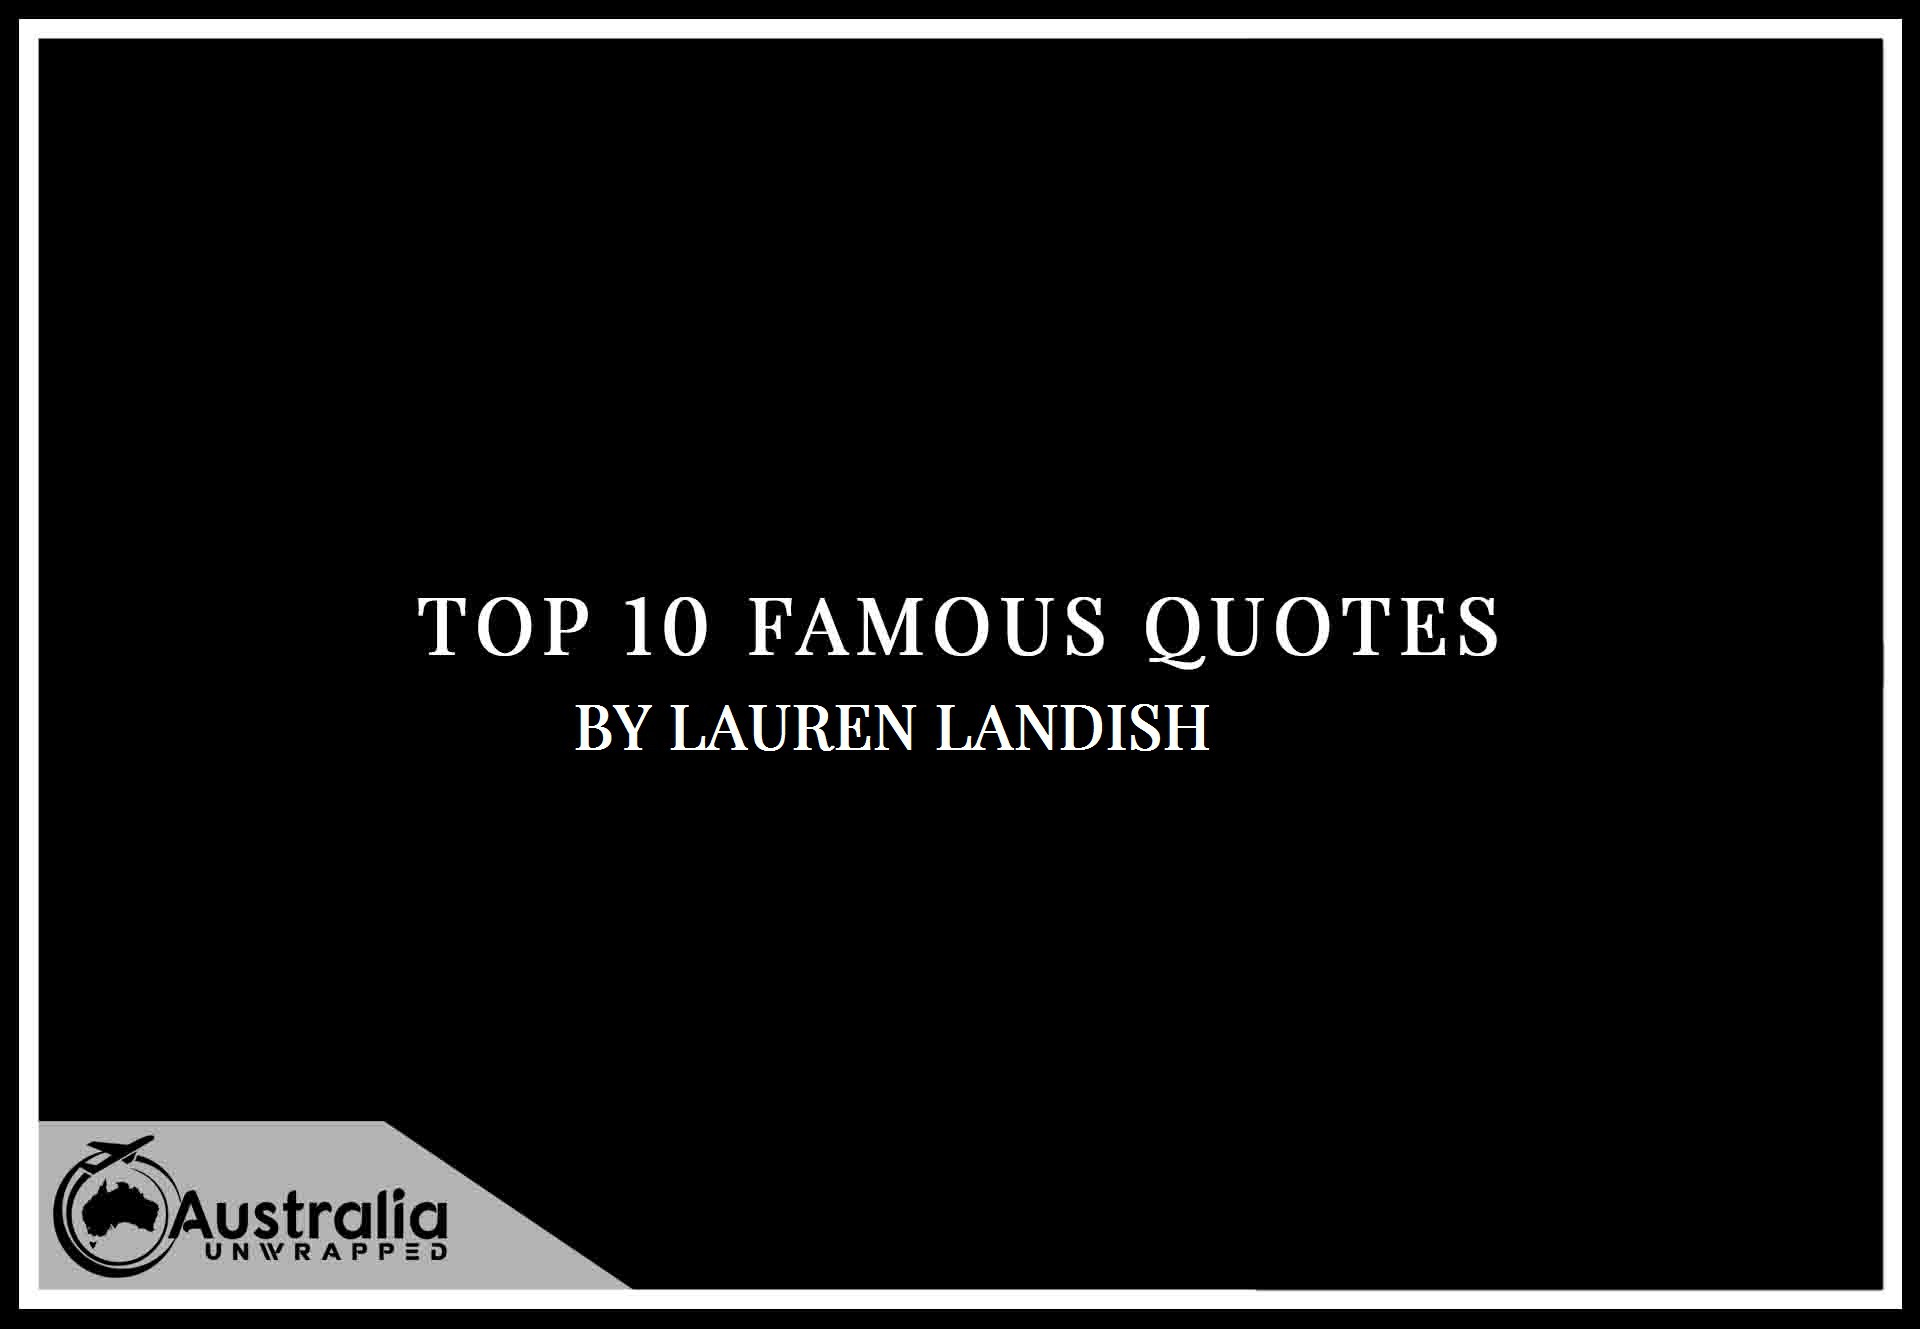 Lauren Landish's Top 10 Popular and Famous Quotes